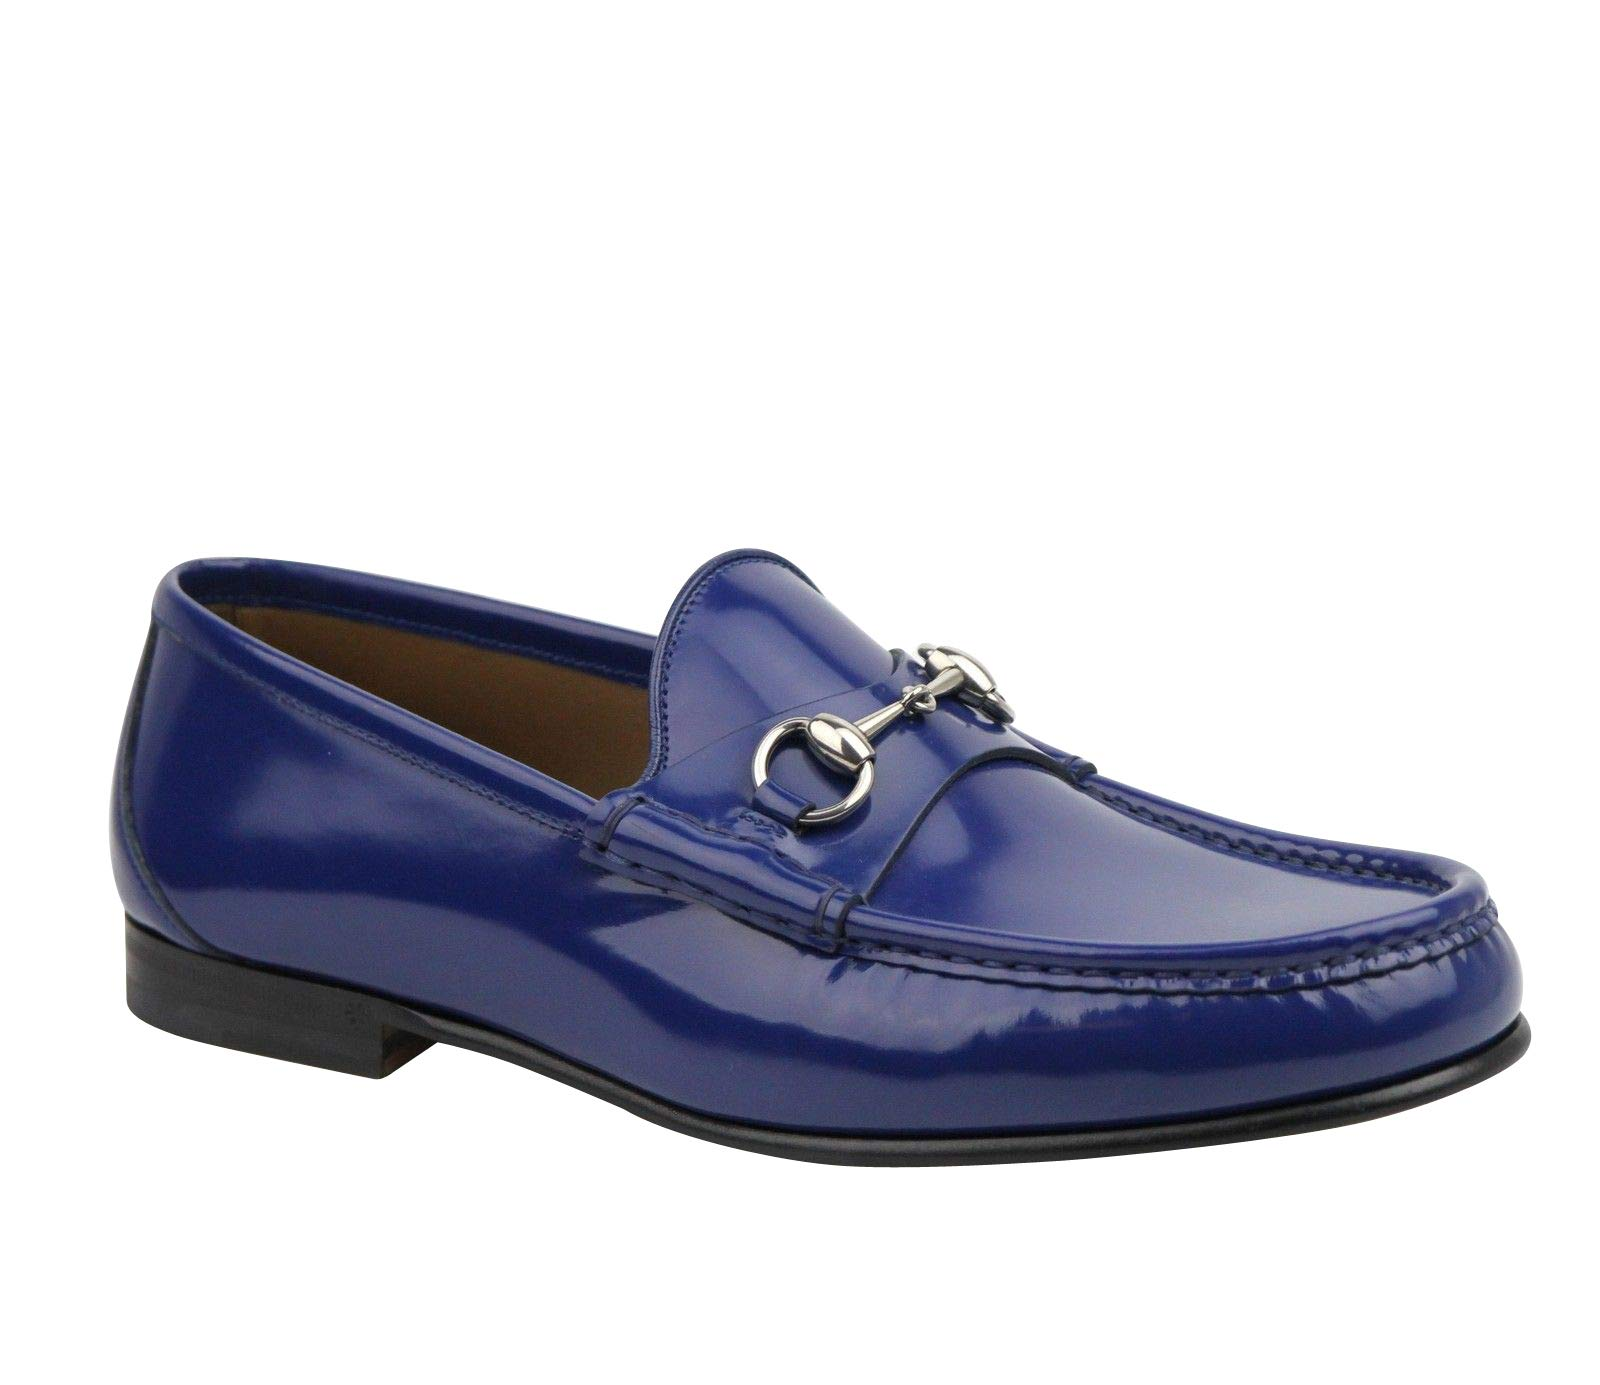 9bc4df18b56 Gucci Brushed Shiny Blue Patent Leather with Horsebit Detail Loafer 387598  4236 (9 G